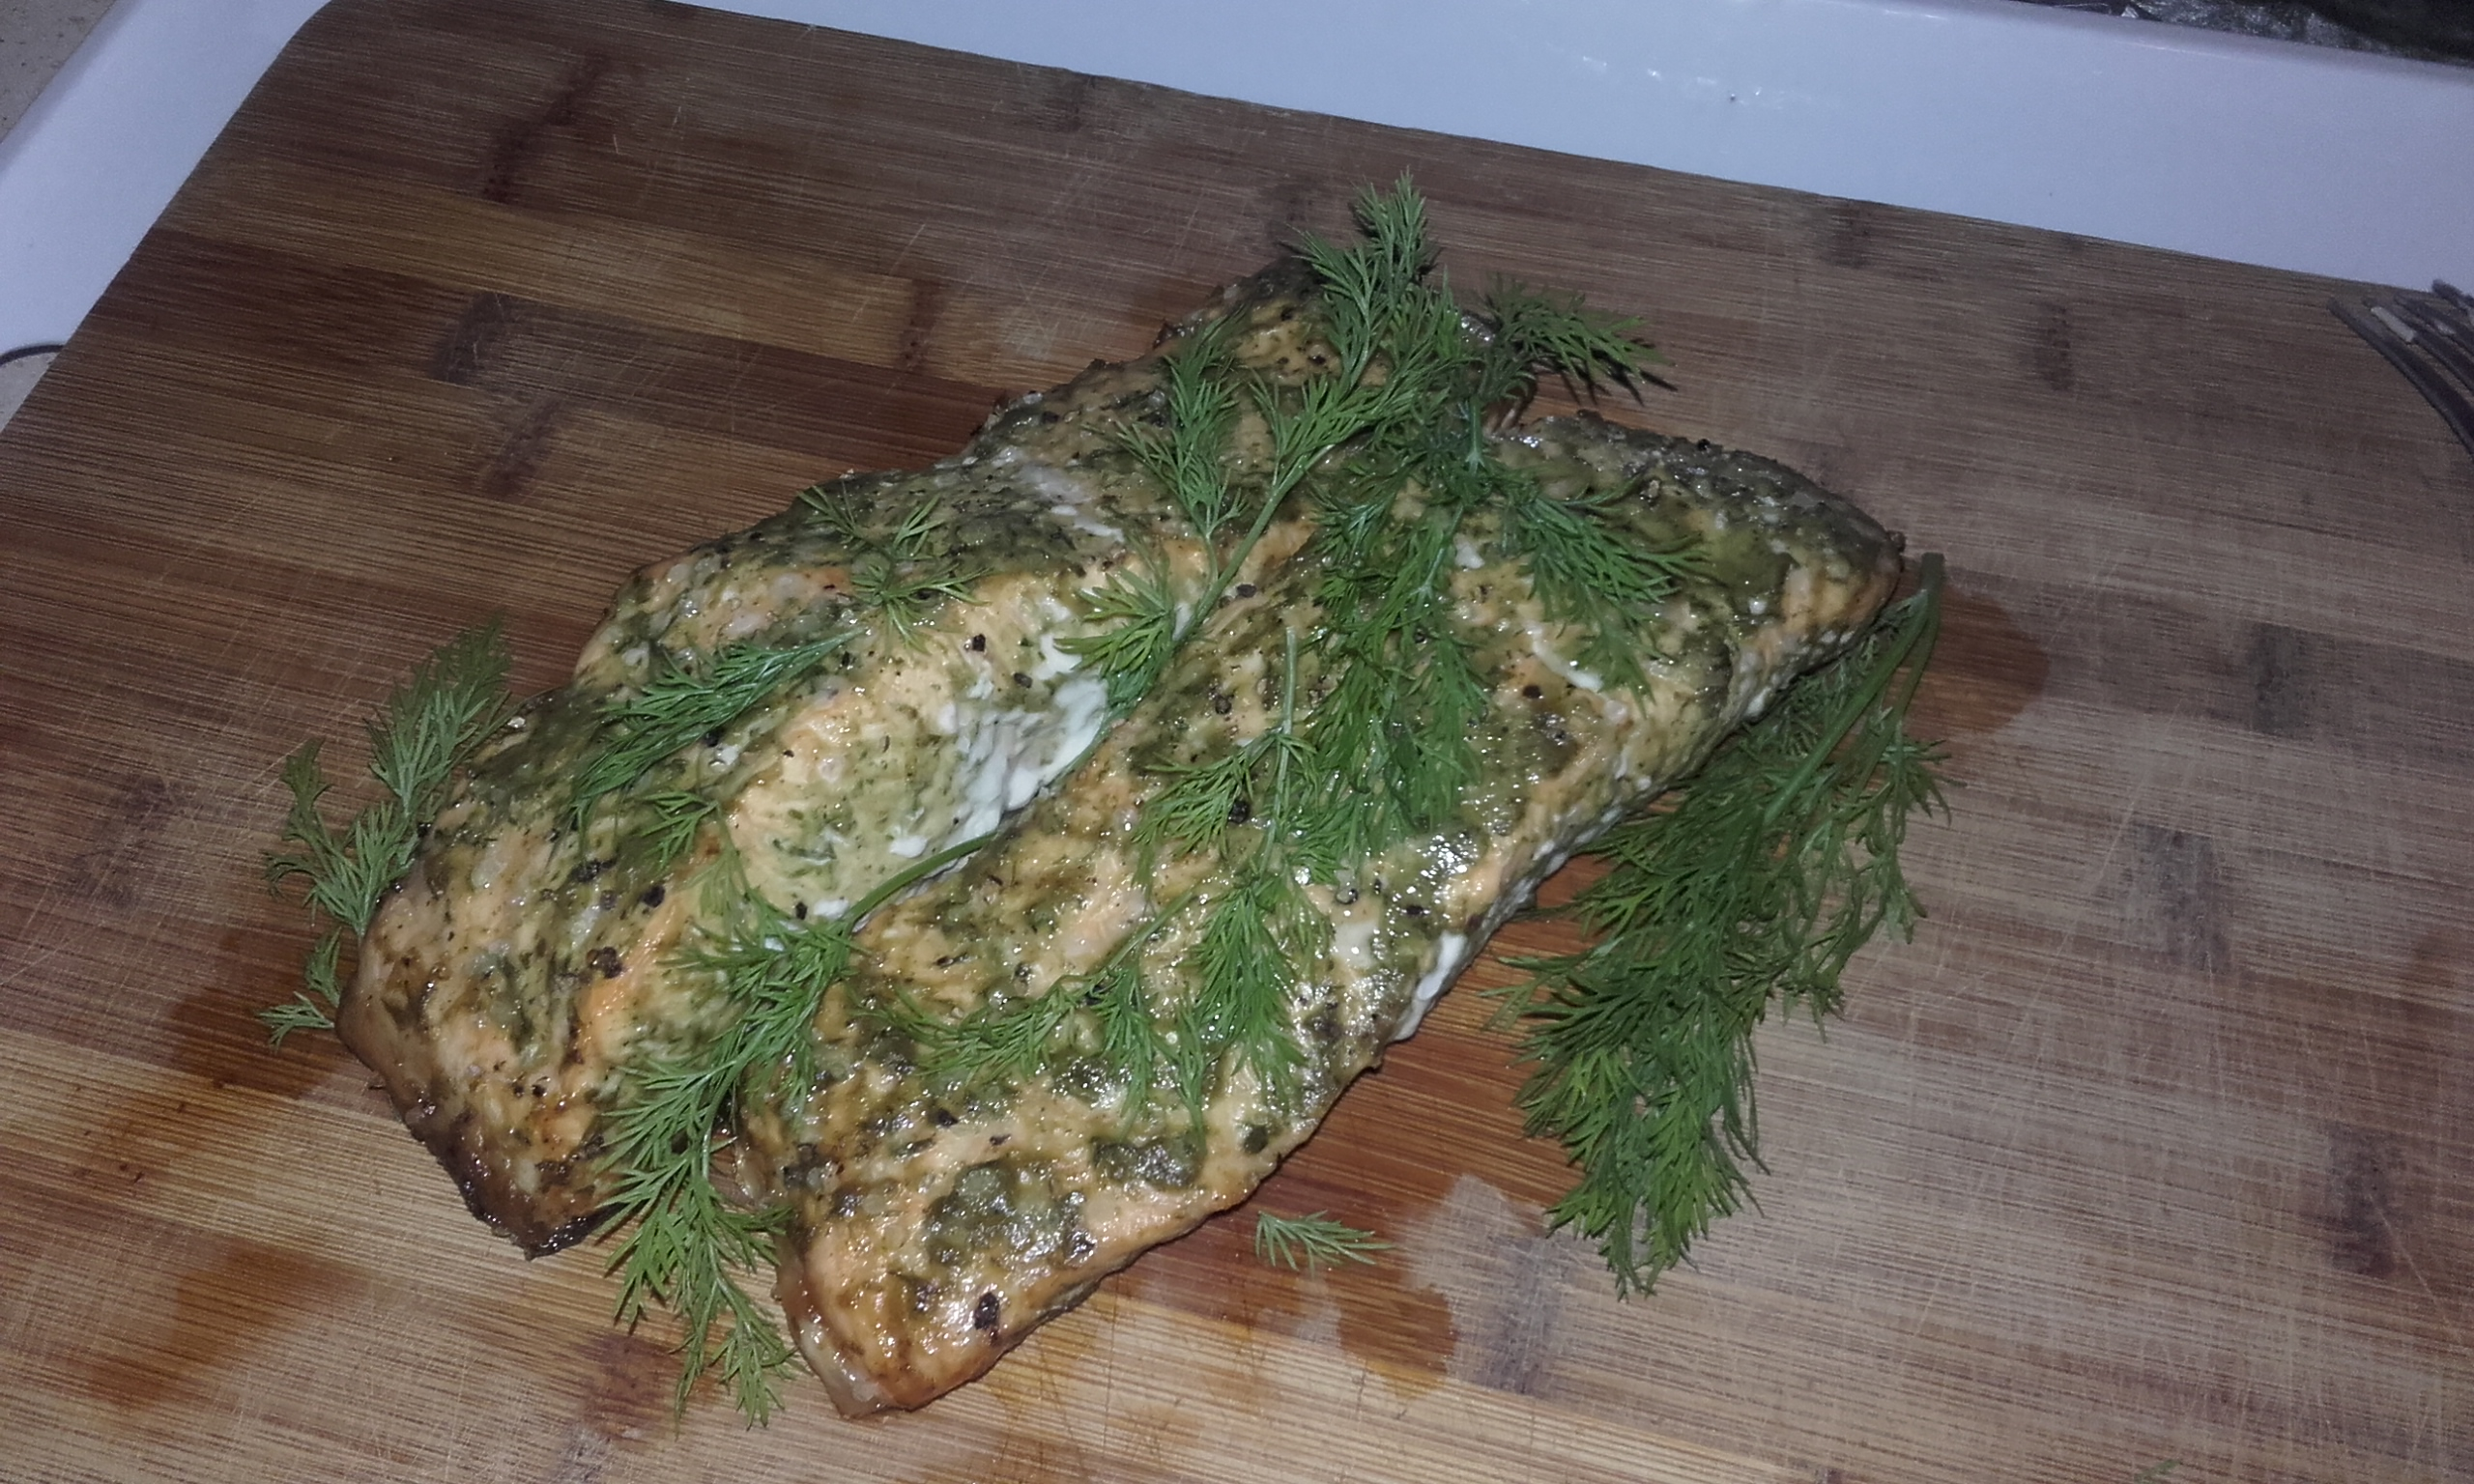 Grilled salmon recipe with dill mustard pesto glazing